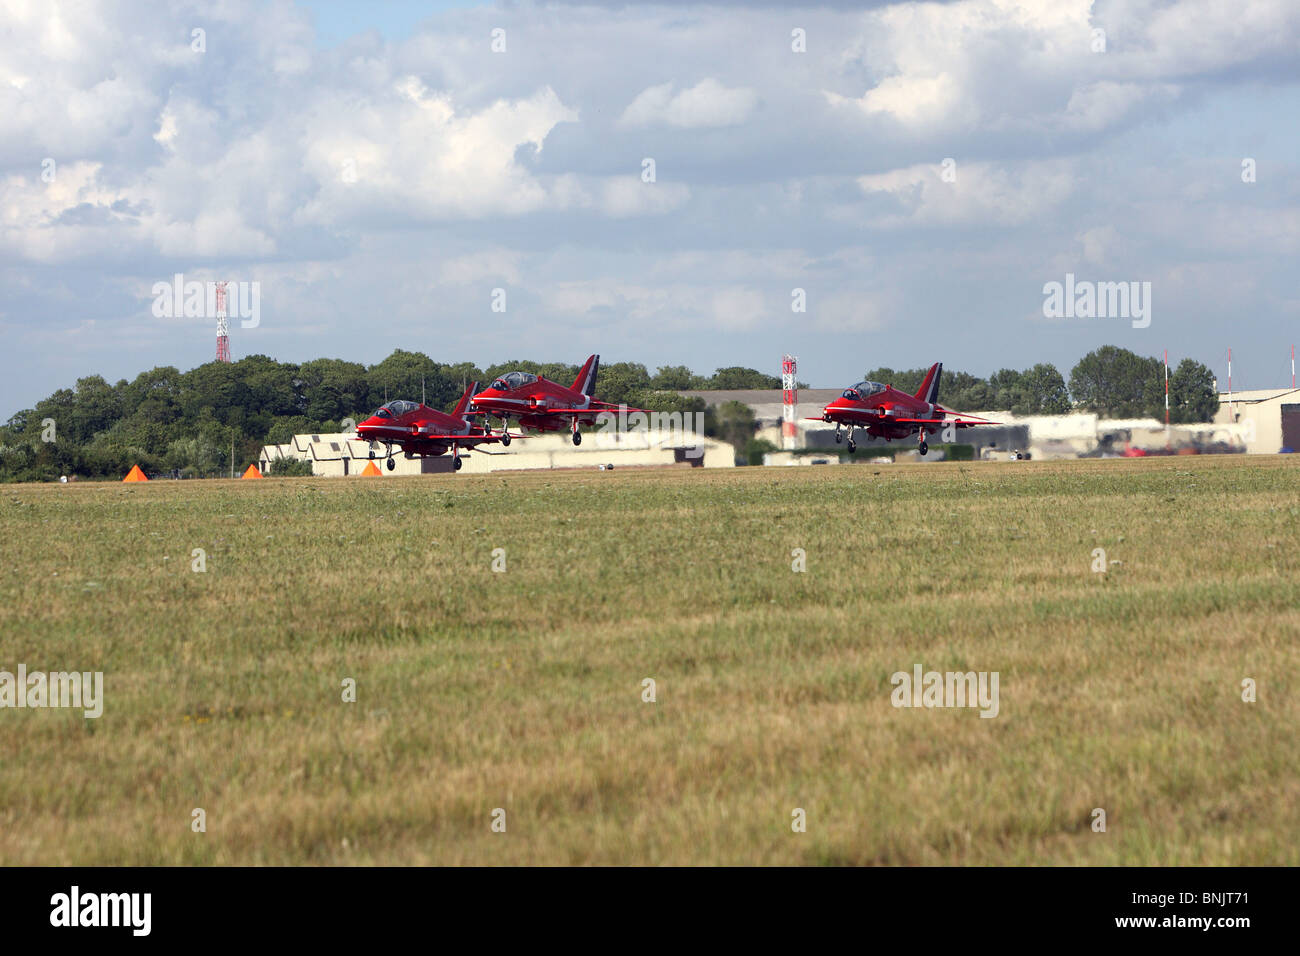 Red Arrows taking off at RAF Fairford Gloucestershire. Royal International Air Tattoo 2010. RIAT Stock Photo